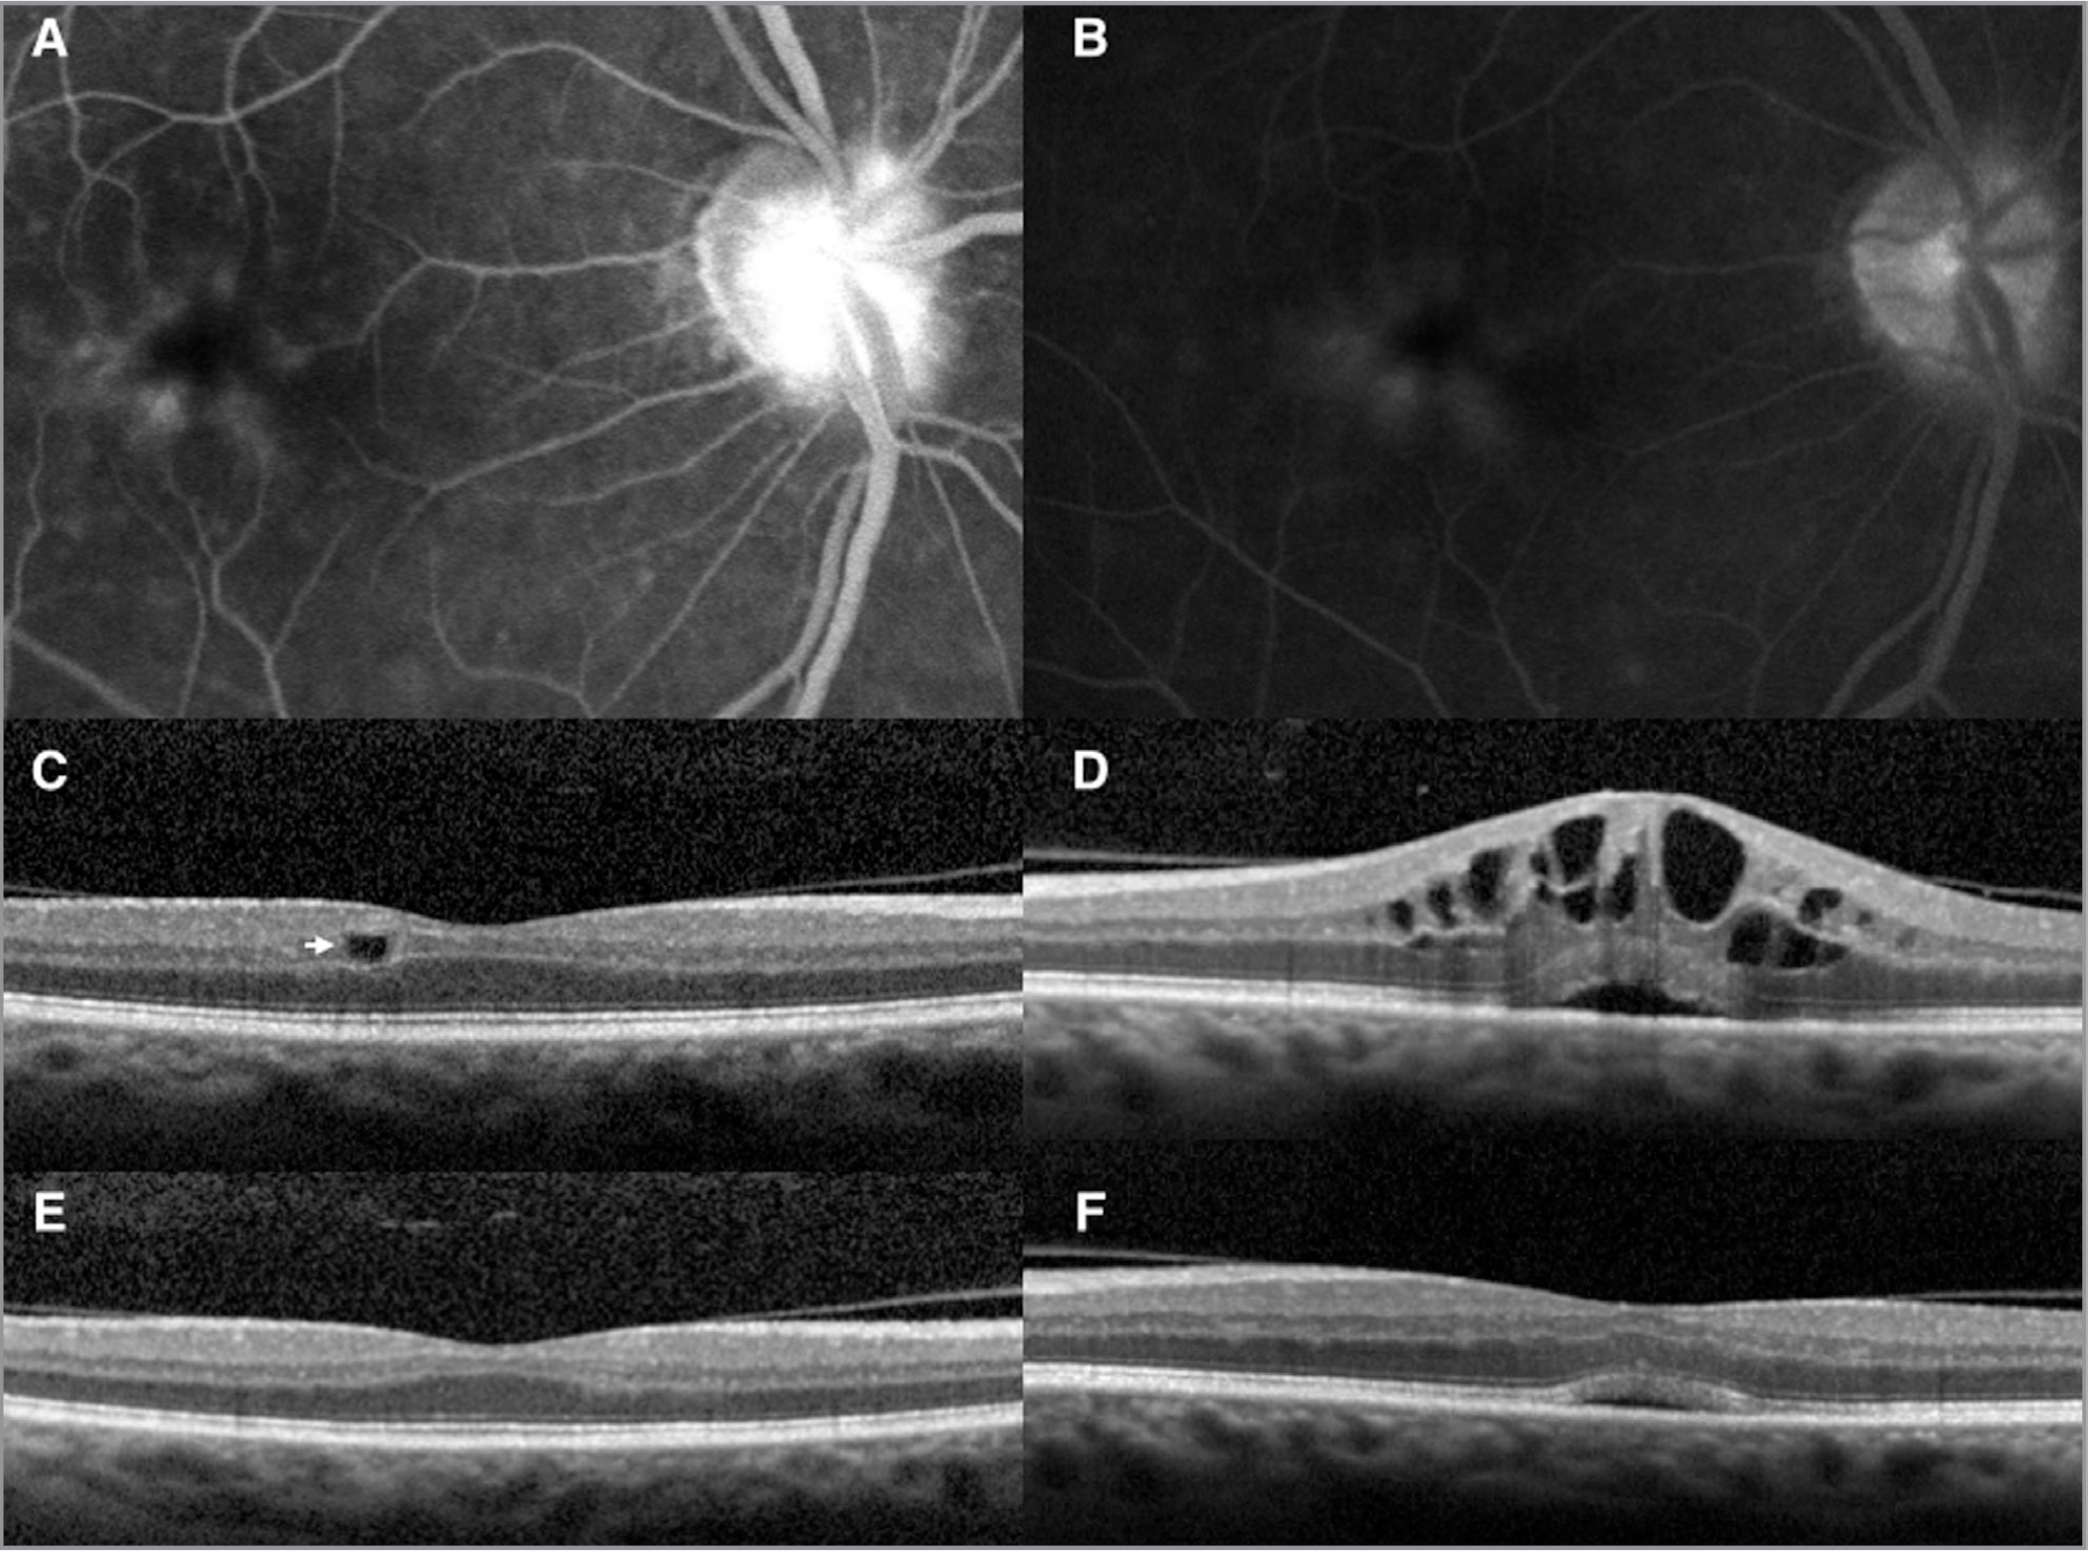 Isolated inner nuclear layer (INL) cystic changes in the phakic fellow eye of a patient with pseudophakic cystoid macular edema (CME). (A) Arteriovenous phase fluorescein angiogram demonstrating mid-capillary perifoveal leakage 6 weeks after uncomplicated cataract extraction in the contralateral eye. (B) Recirculation phase demonstrating late and mild disc leakage. (C) Spectral-domain optical coherence tomography (SD-OCT) of the phakic unoperated eye displays isolated INL cysts (arrow). (D) The operative eye demonstrates typical pseudophakic CME. (E) Follow-up SD-OCT of phakic fellow eye demonstrating resolution of edema following treatment of and improved edema in the contralateral eye (F).